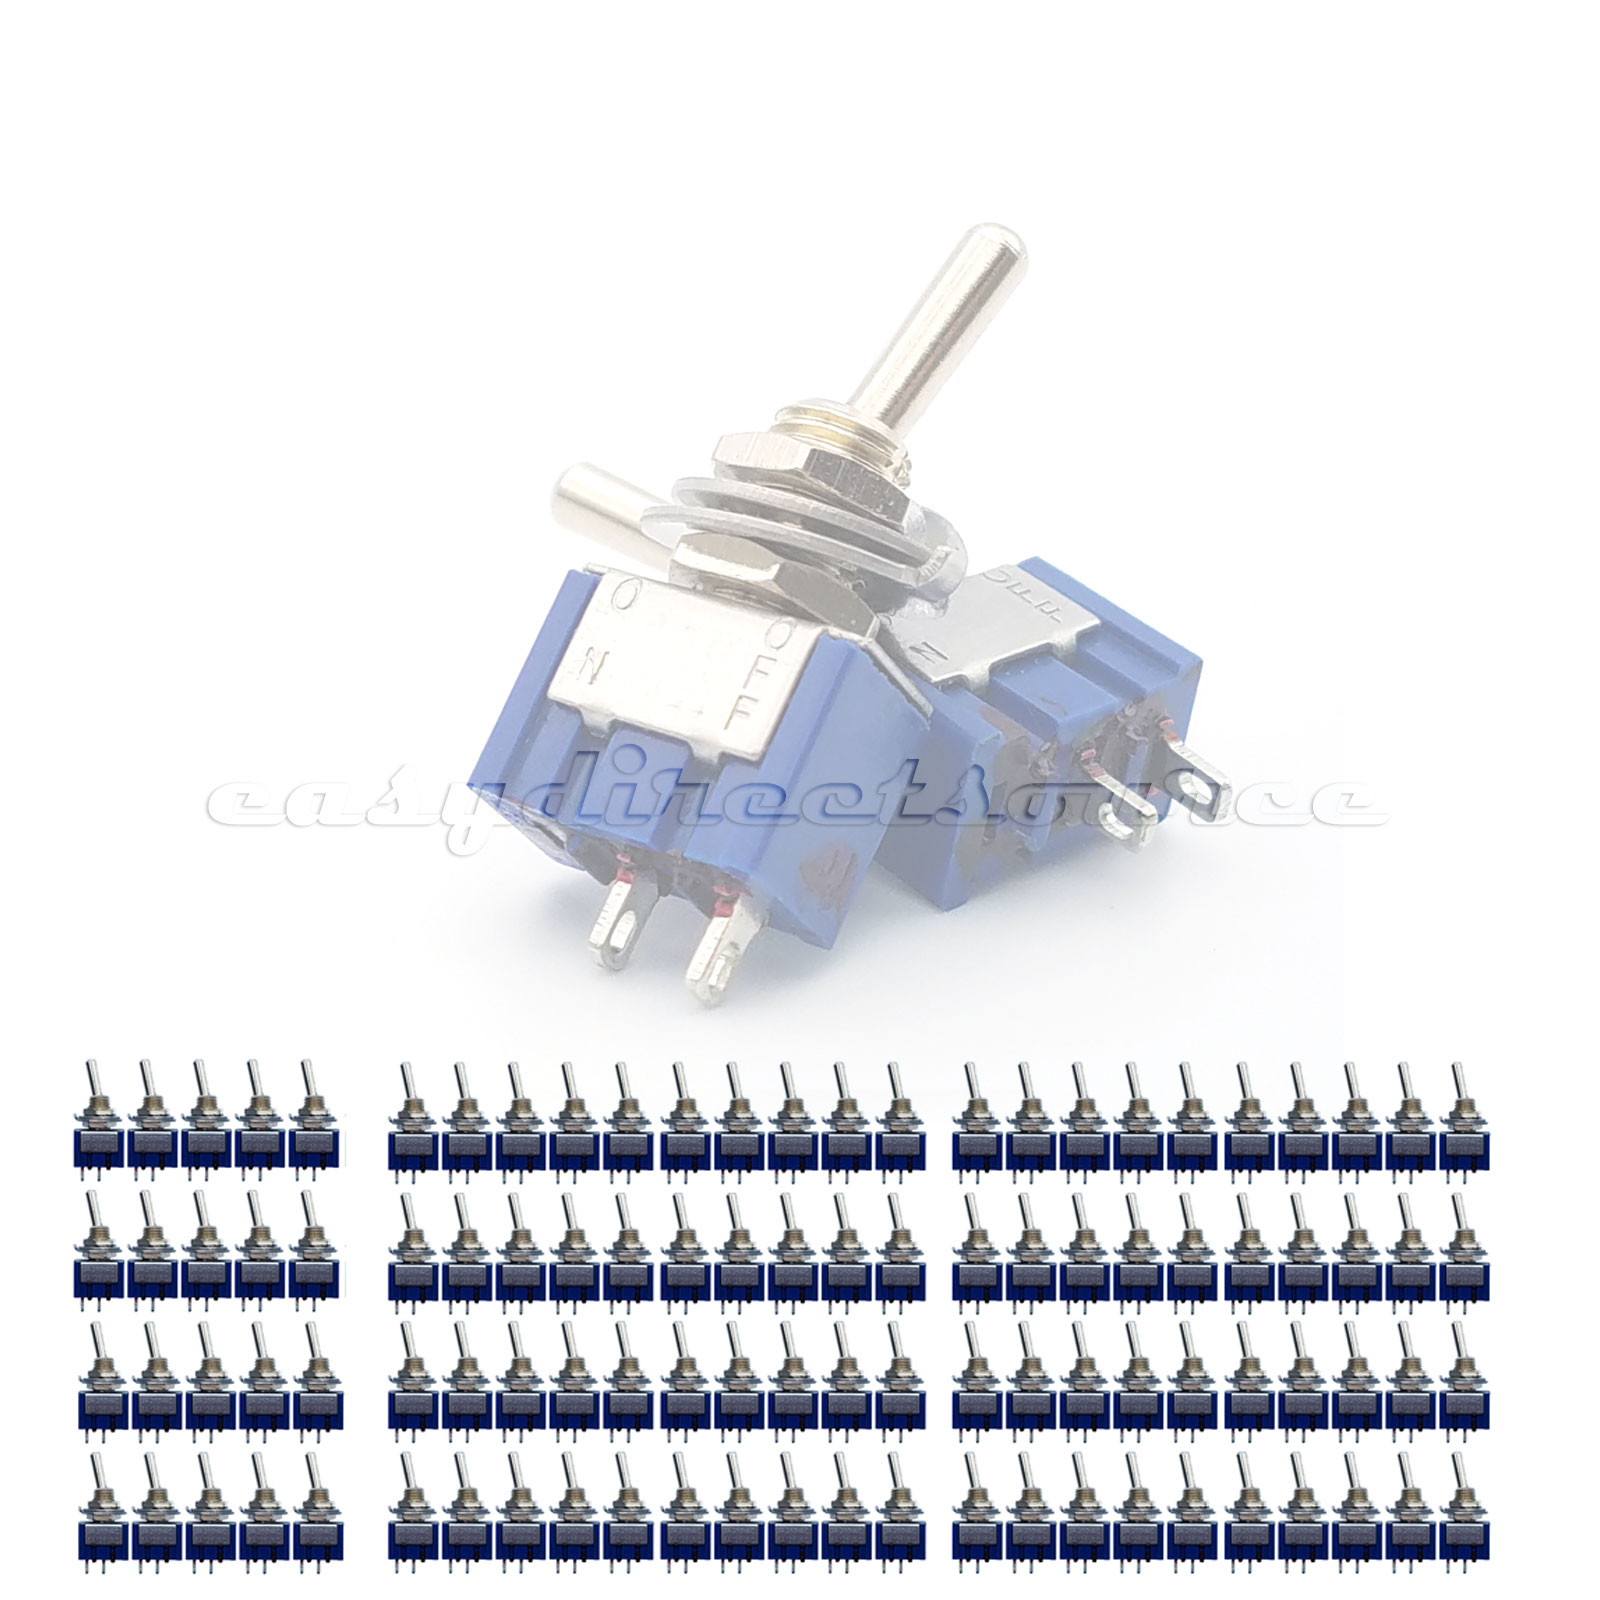 100pcs 2 Pin Spst Position 6a 250vac On Off Mts 101 Mini Toggle Rocker Switches Switch Onoff